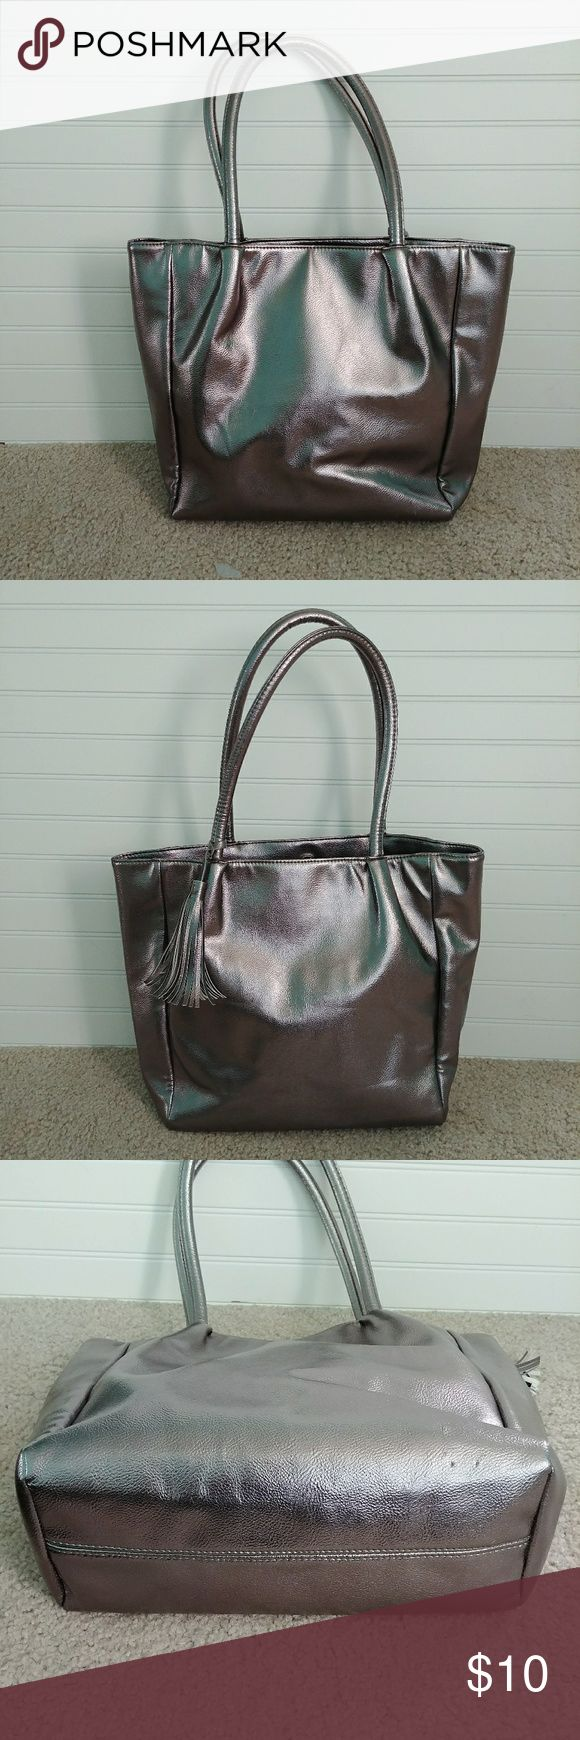 Metallic silver tote bag Ultra Chi metallic silver tote bag. 2 flaws shown in photos. Interior has no stains or tears. Bags Totes